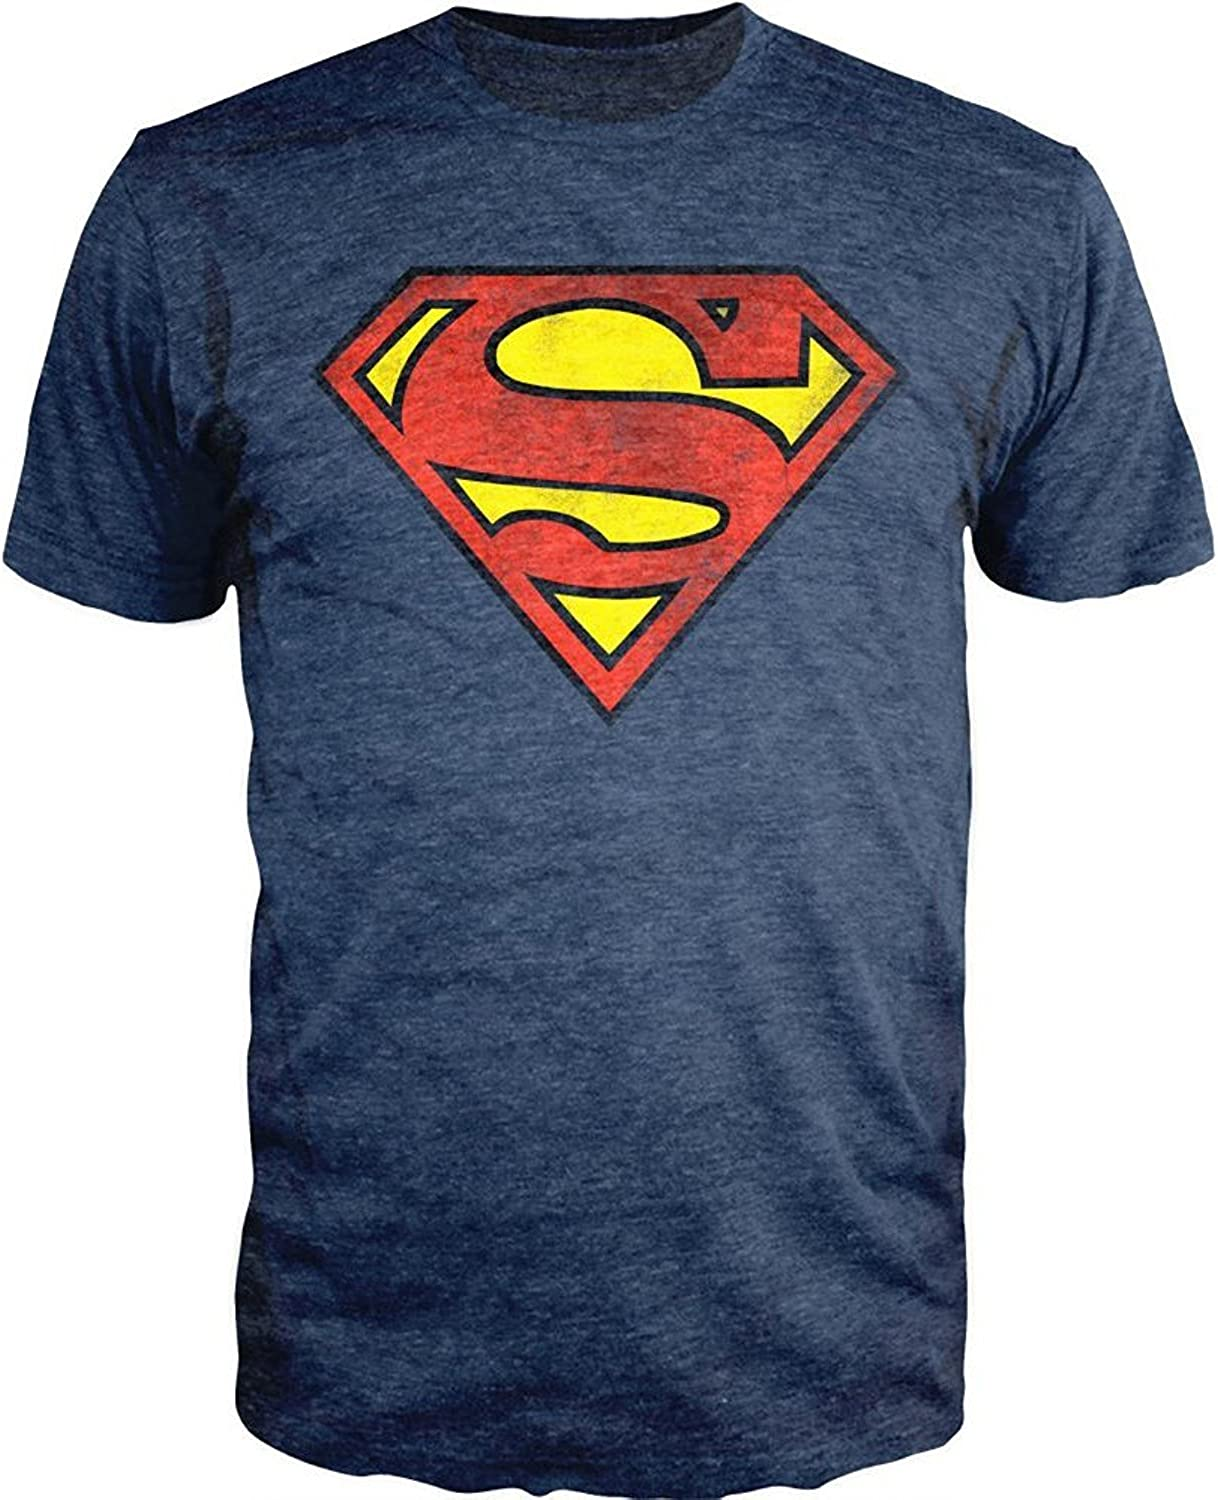 DC Comics Superman Logo T-Shirt Officially Licensed